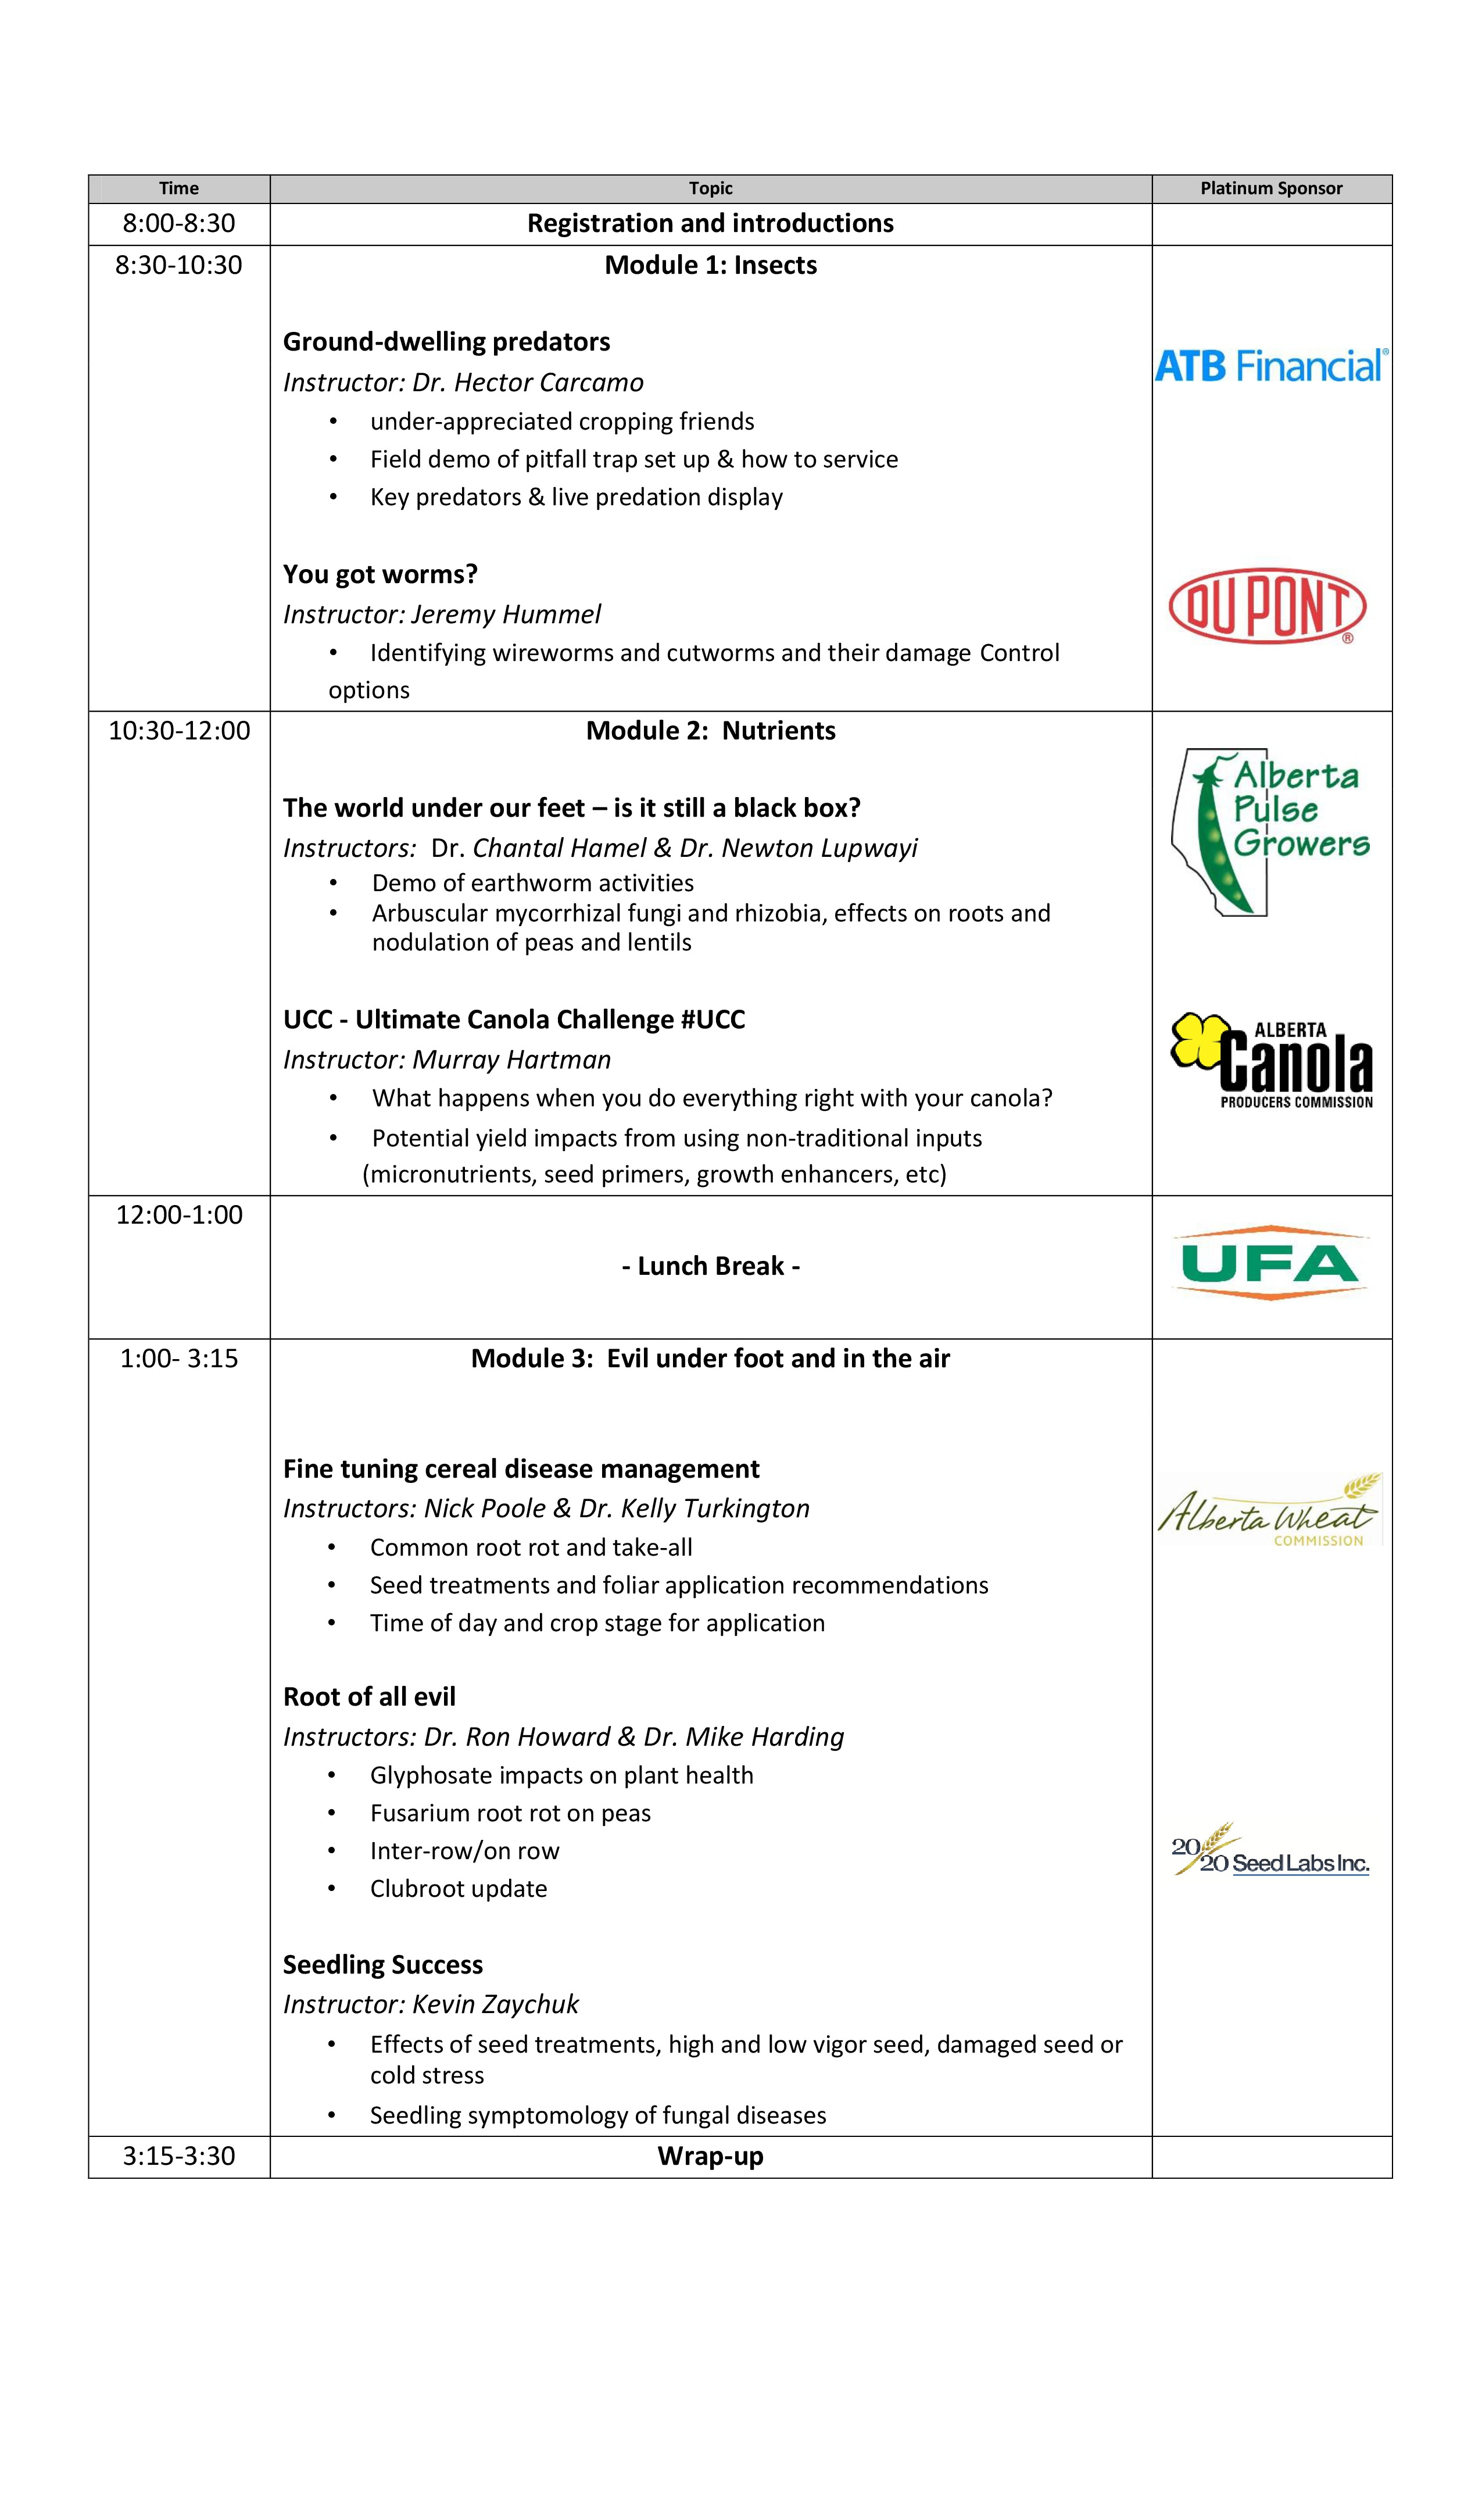 The schedule for the 2013 Farming Smarter Field School.